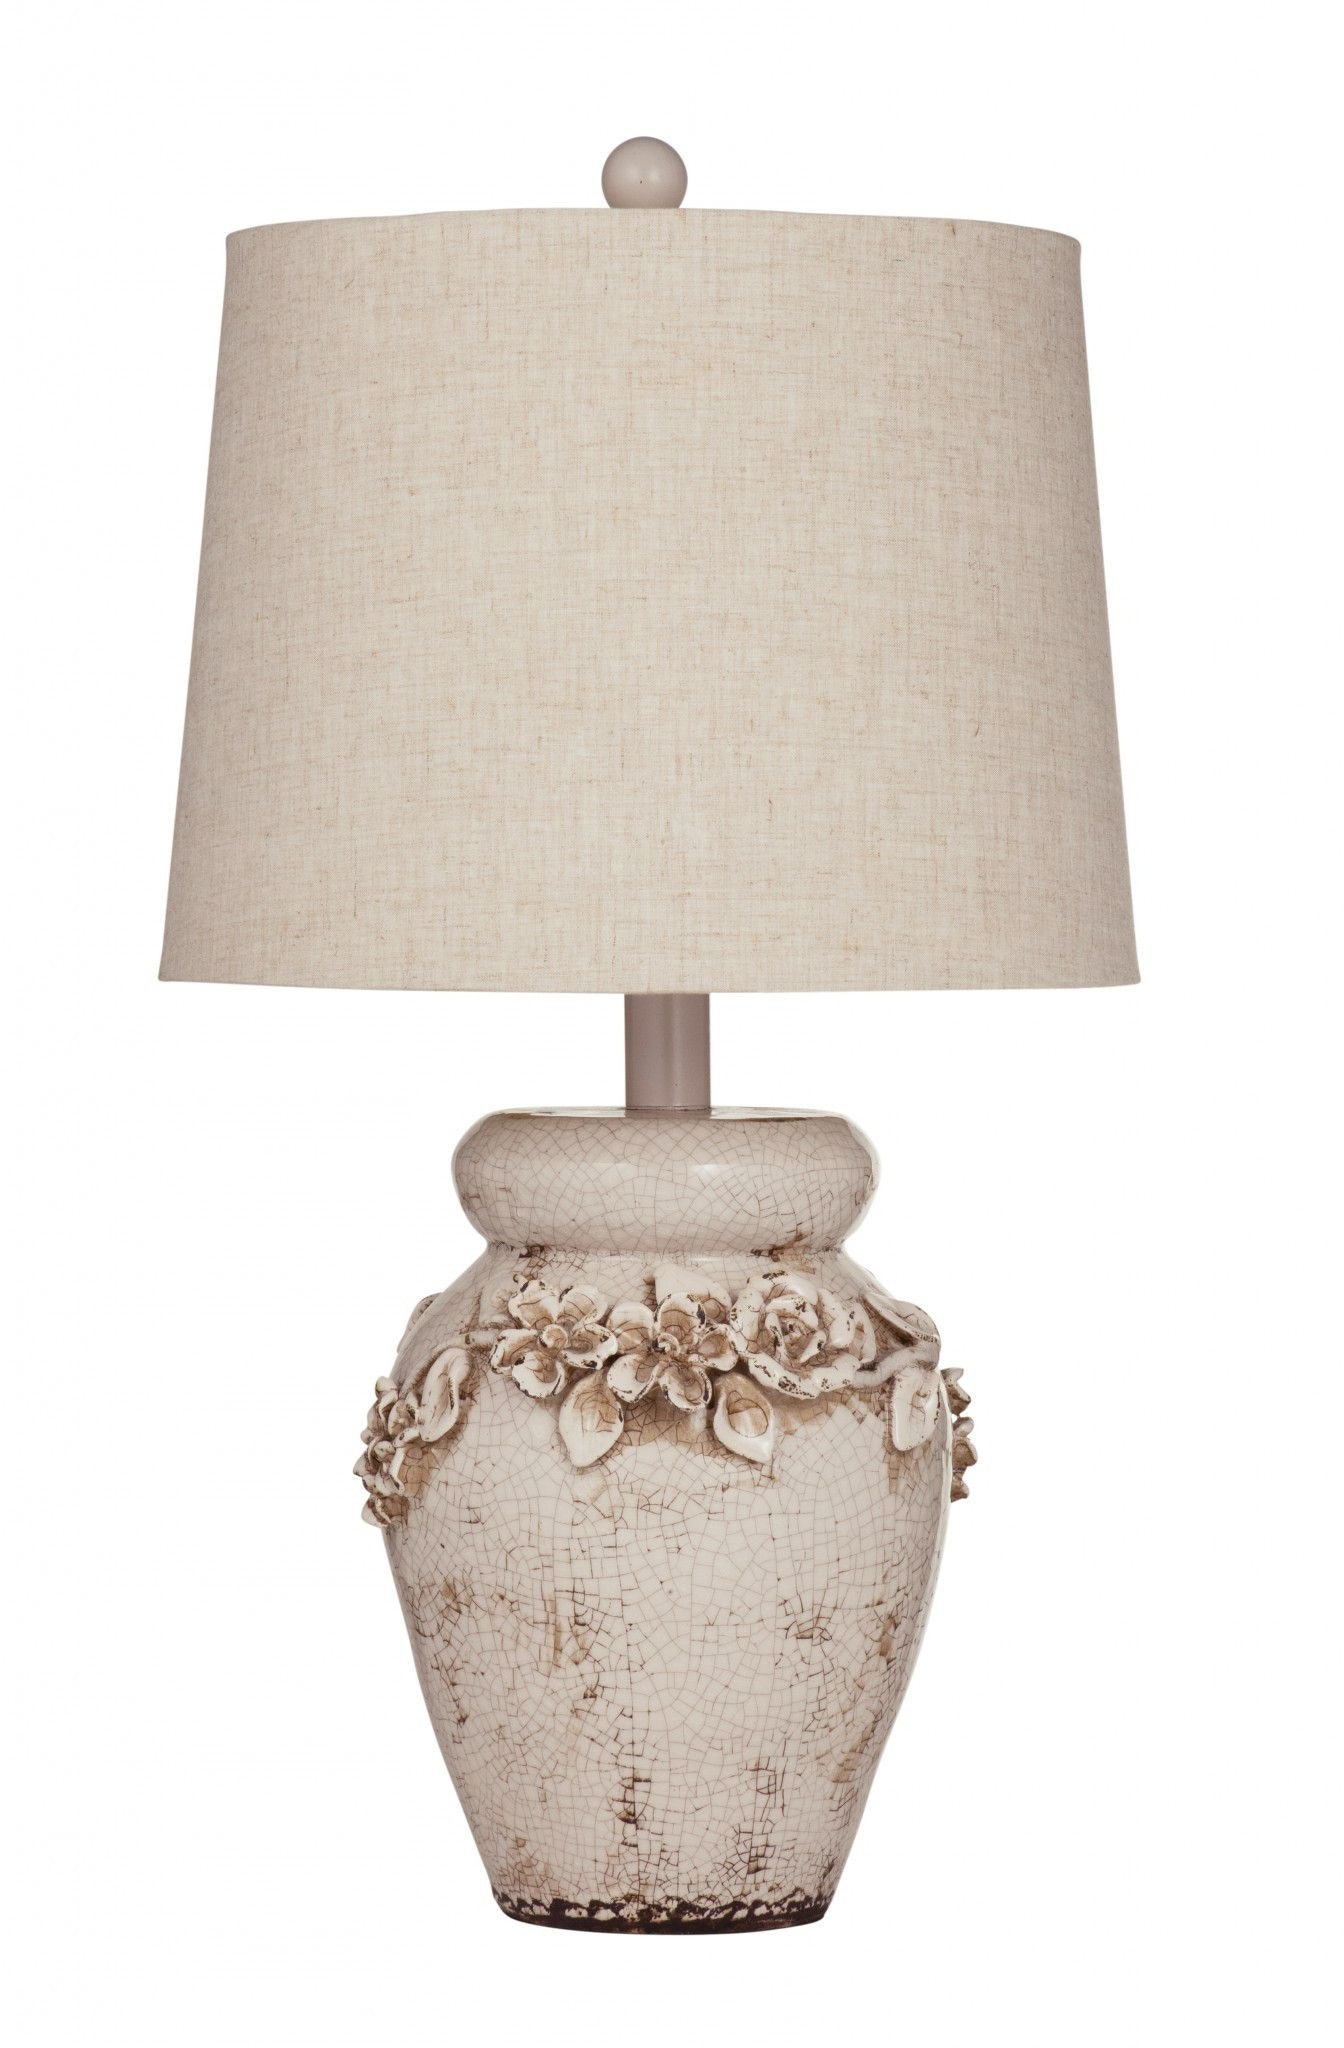 Bassett Mirror Company Lamps And Lighting Eleanore Table Lamp L2321t